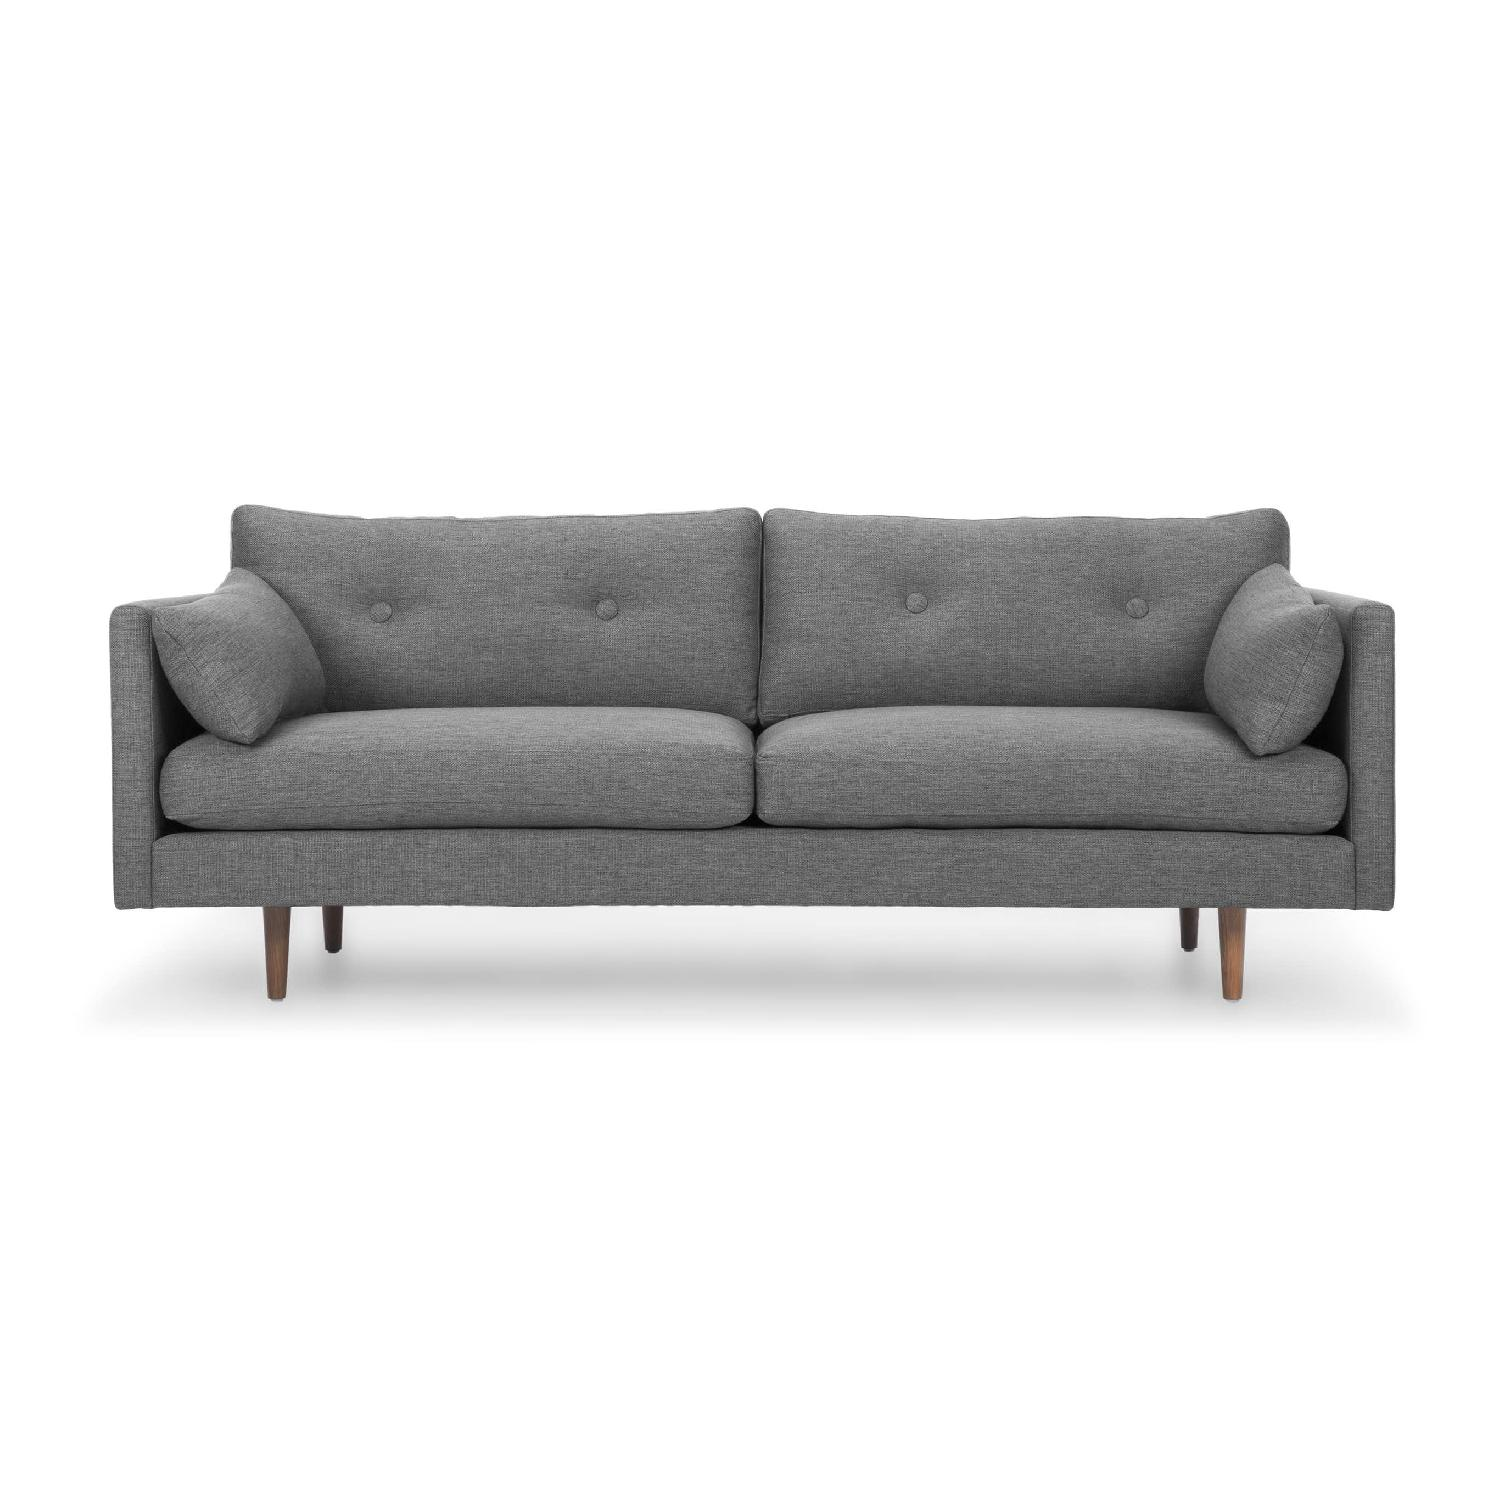 Article Gravel Gray Anton Sofa ...